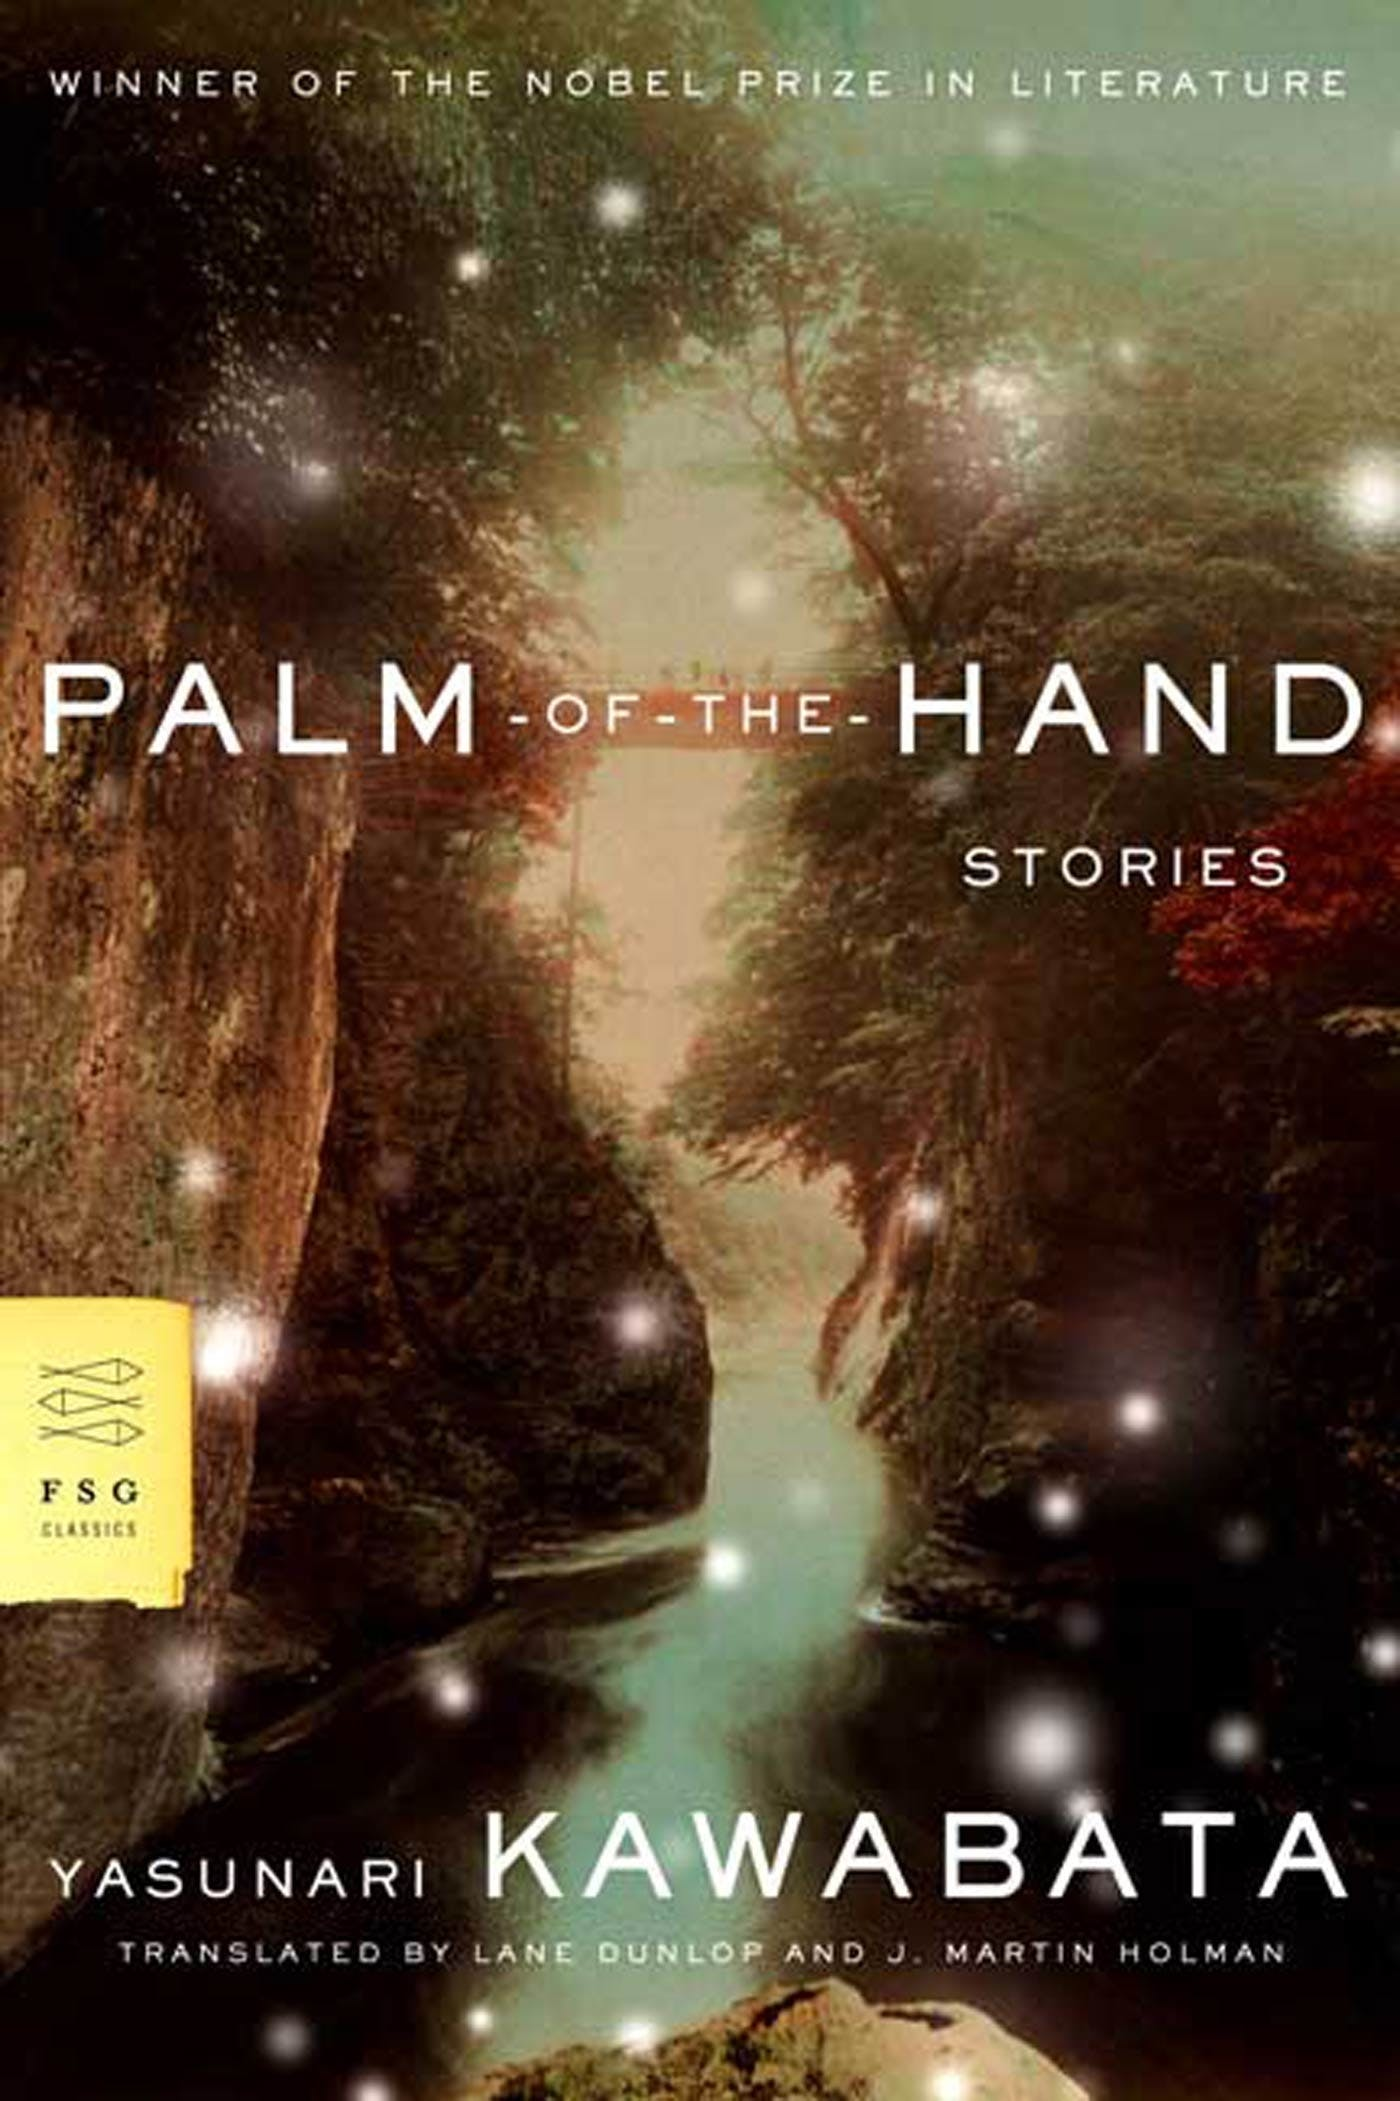 Image of Palm-of-the-Hand Stories